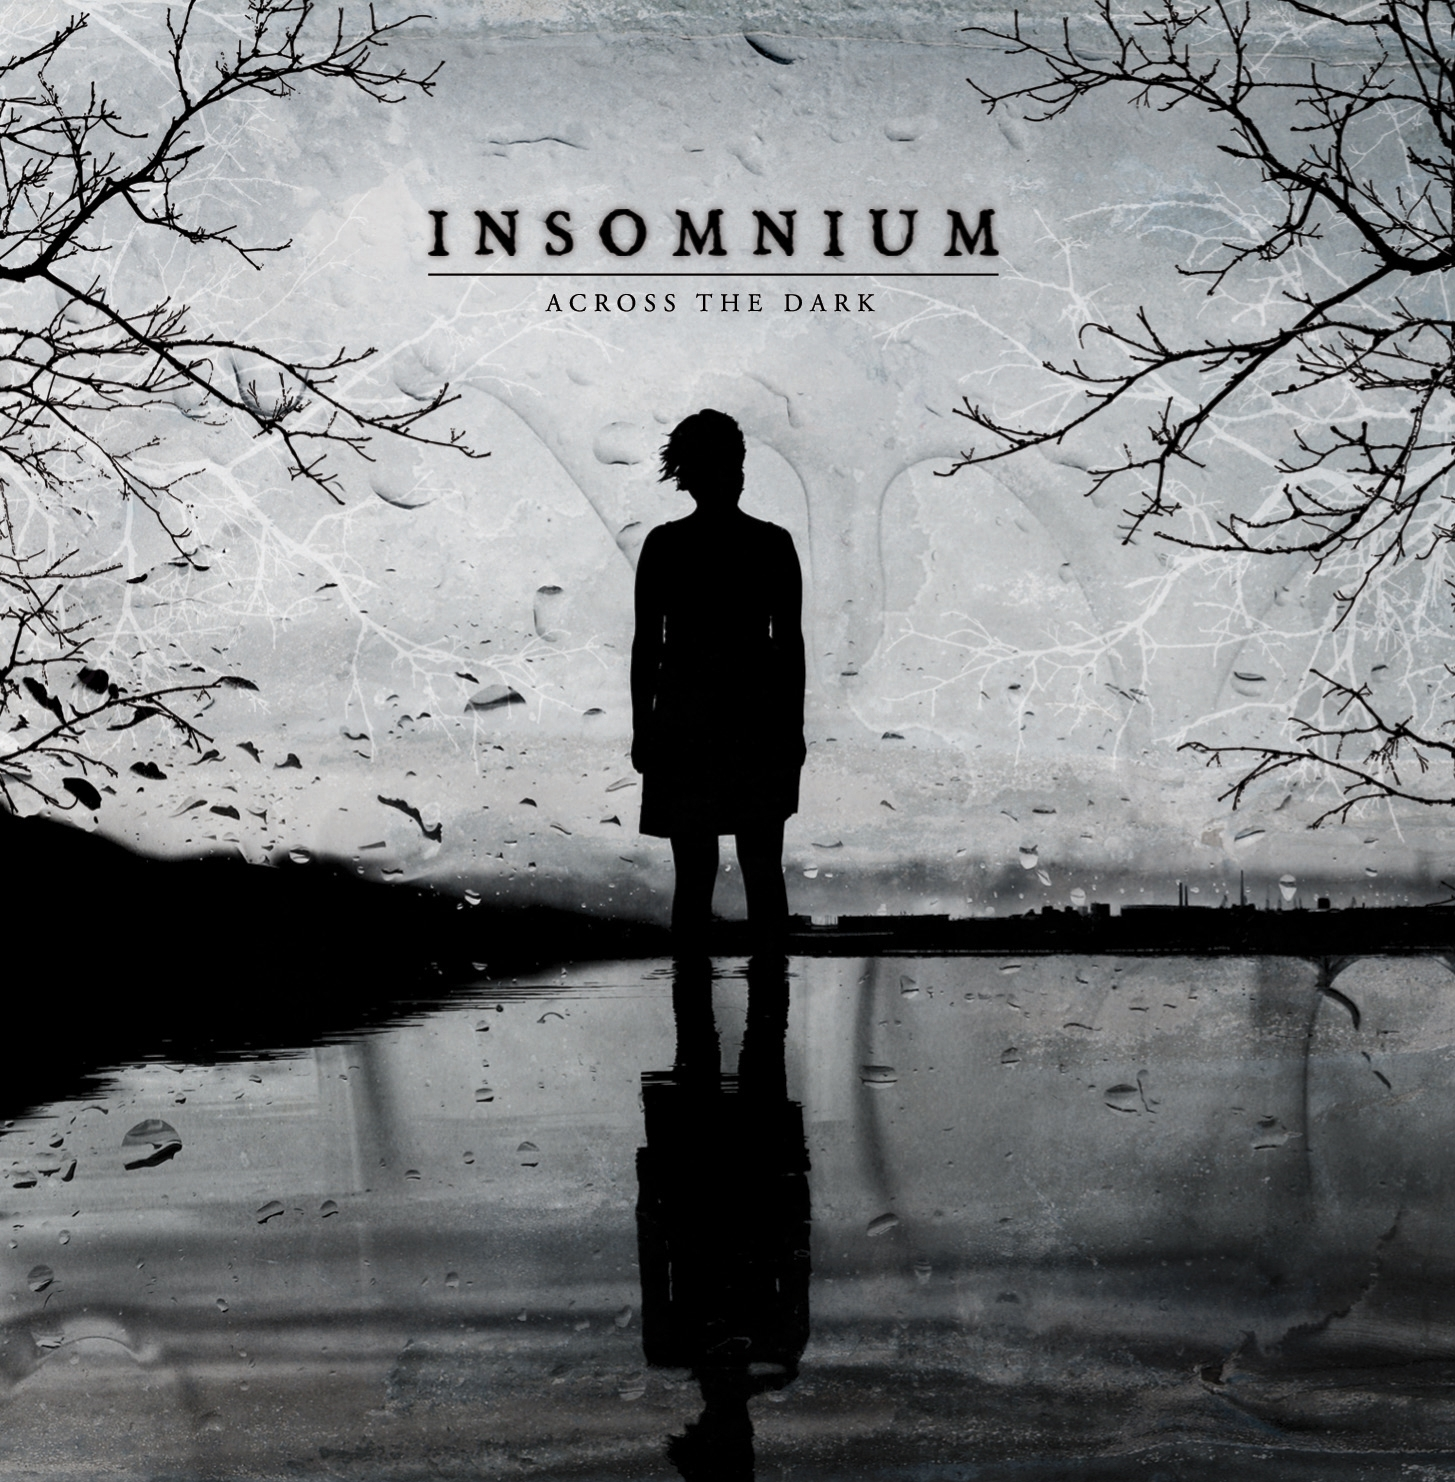 Insomnium – Across the Dark